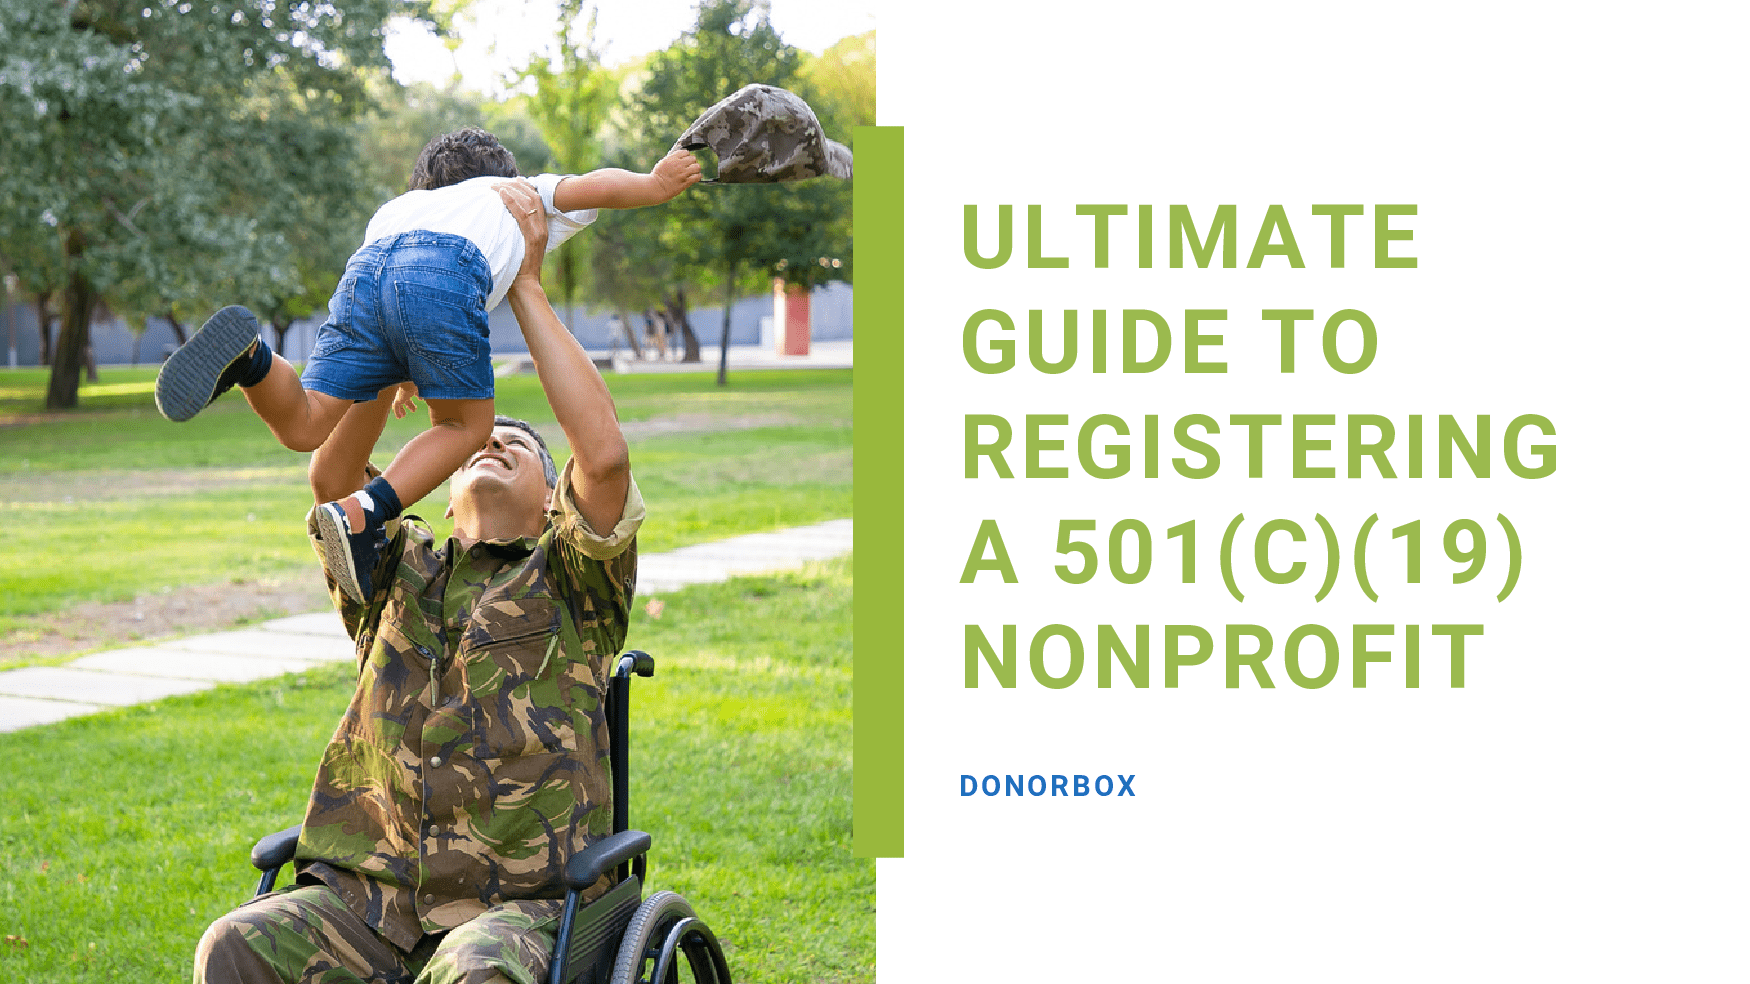 The Ultimate Guide to Registering a 501(c)(19) Nonprofit Organization